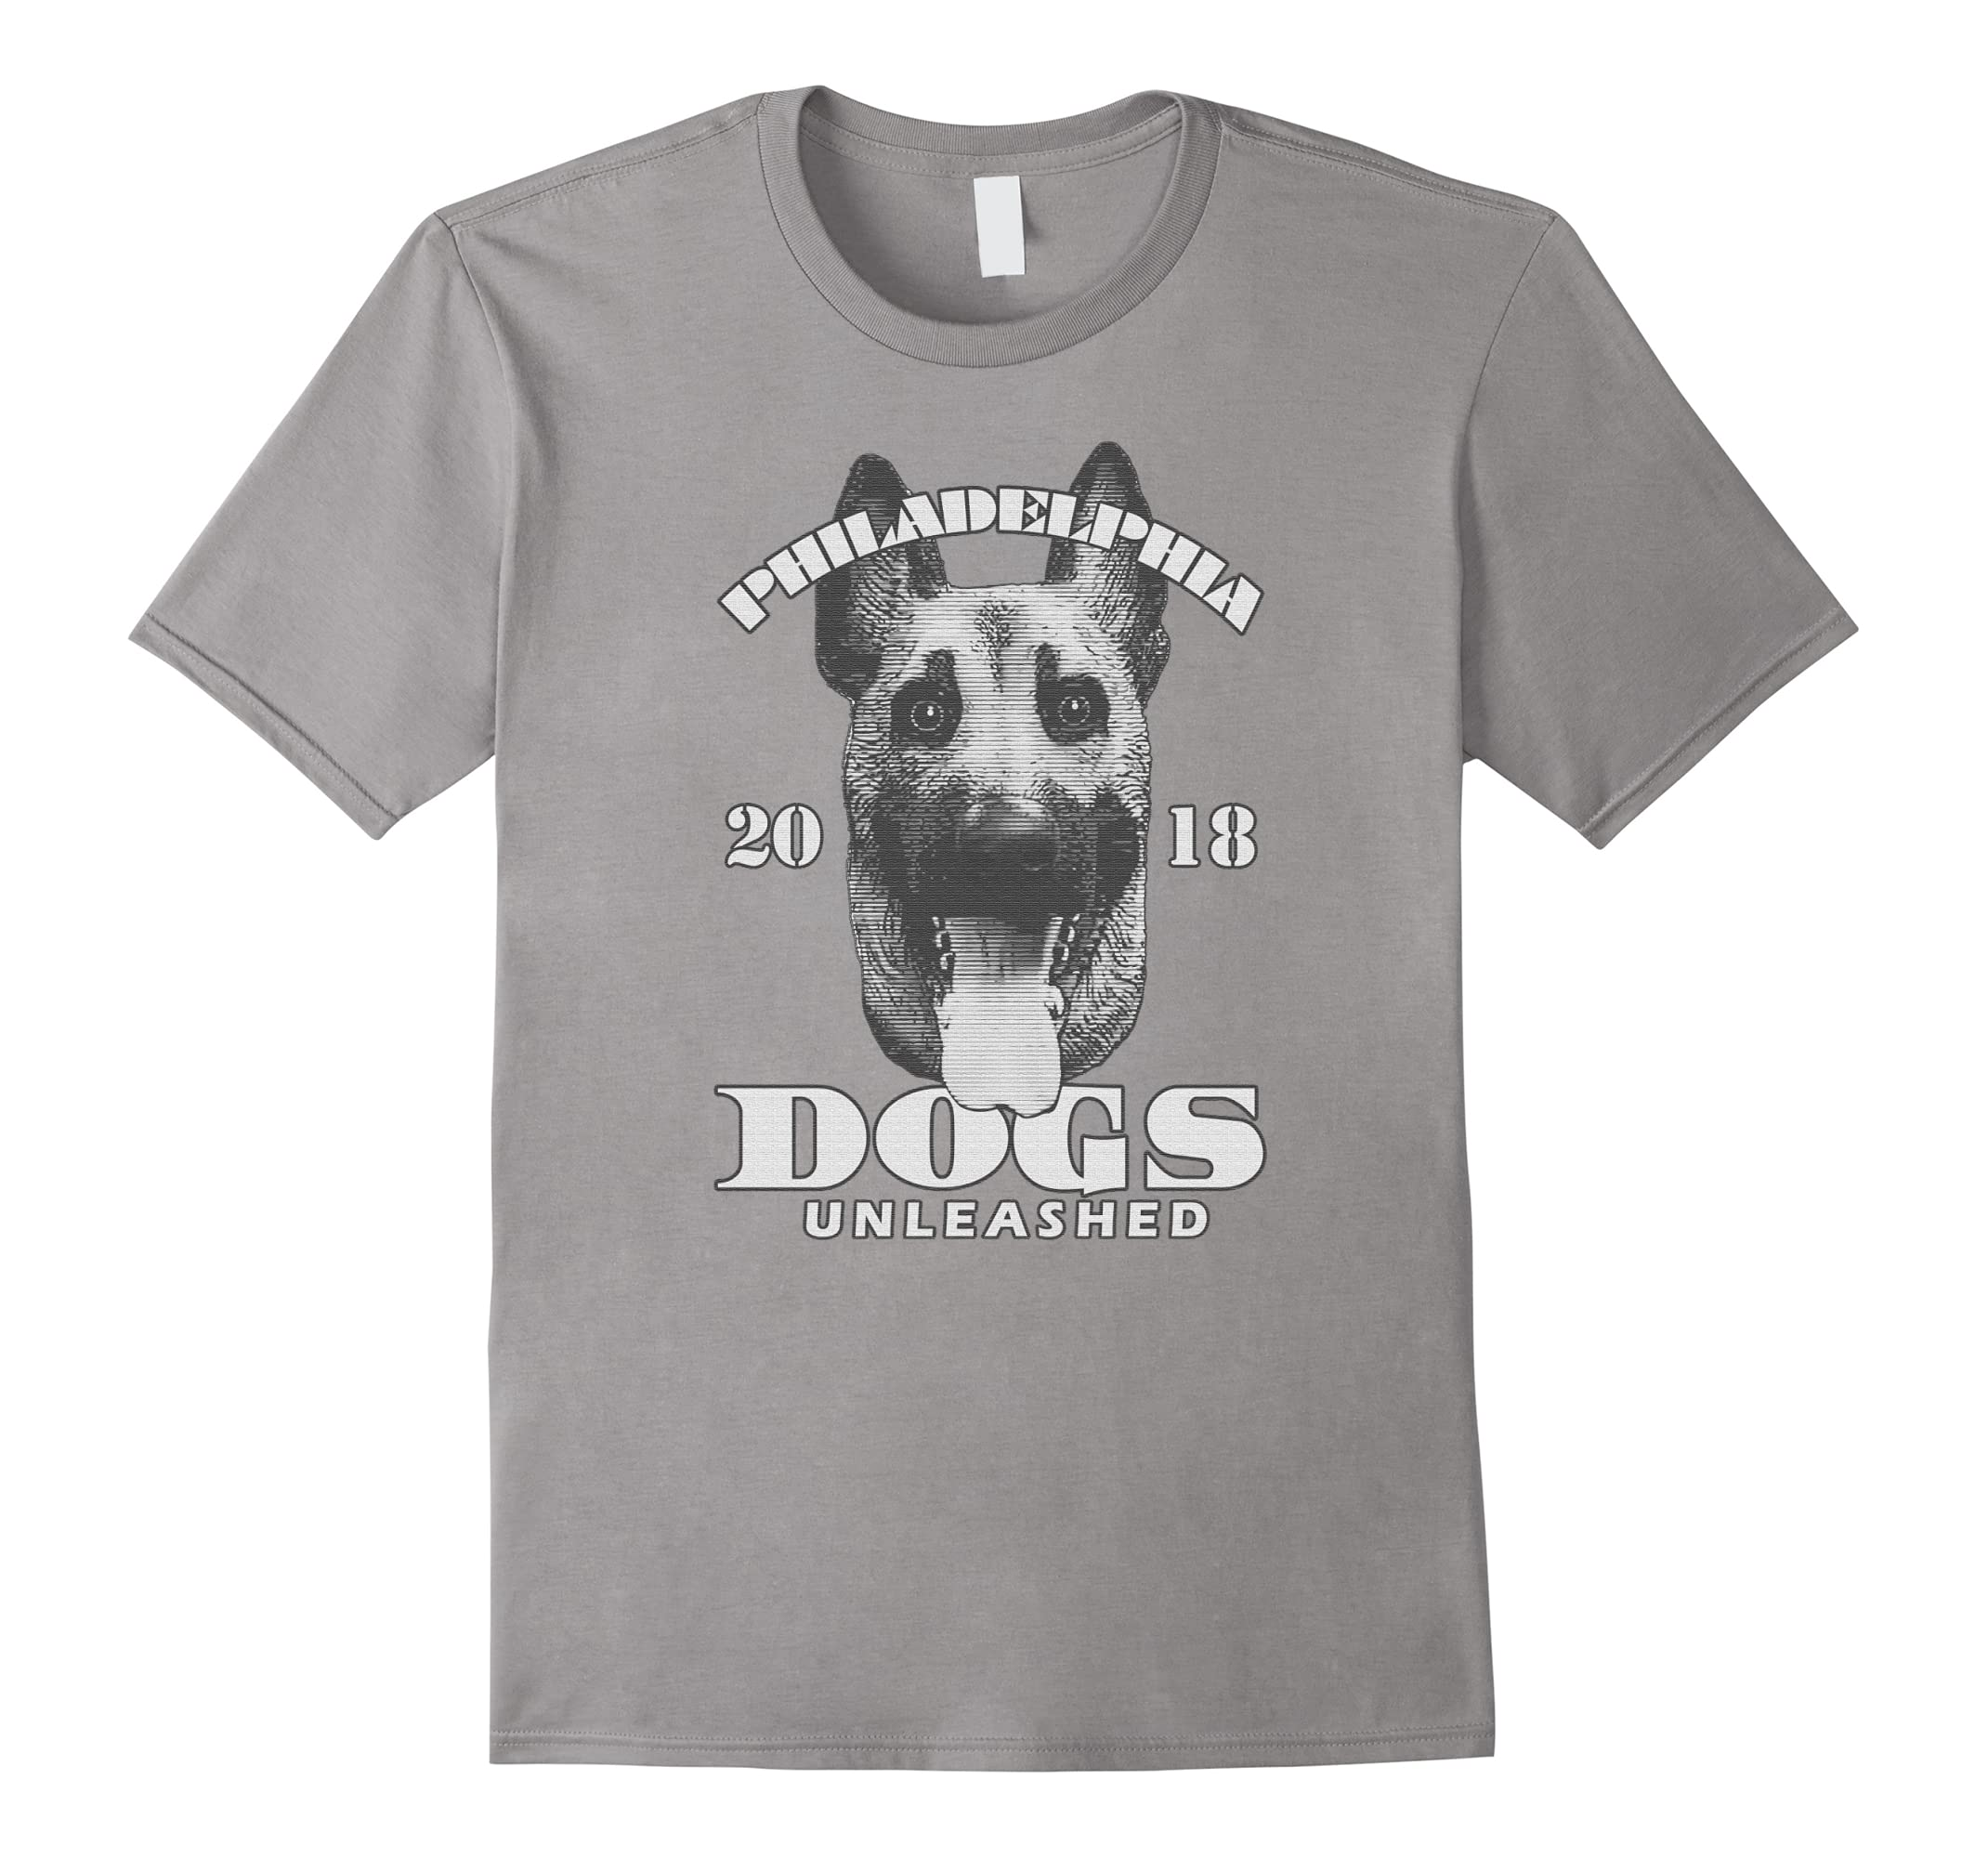 Philadelphia Dogs Philly UnderDogs 2018 Unleashed-ah my shirt one gift